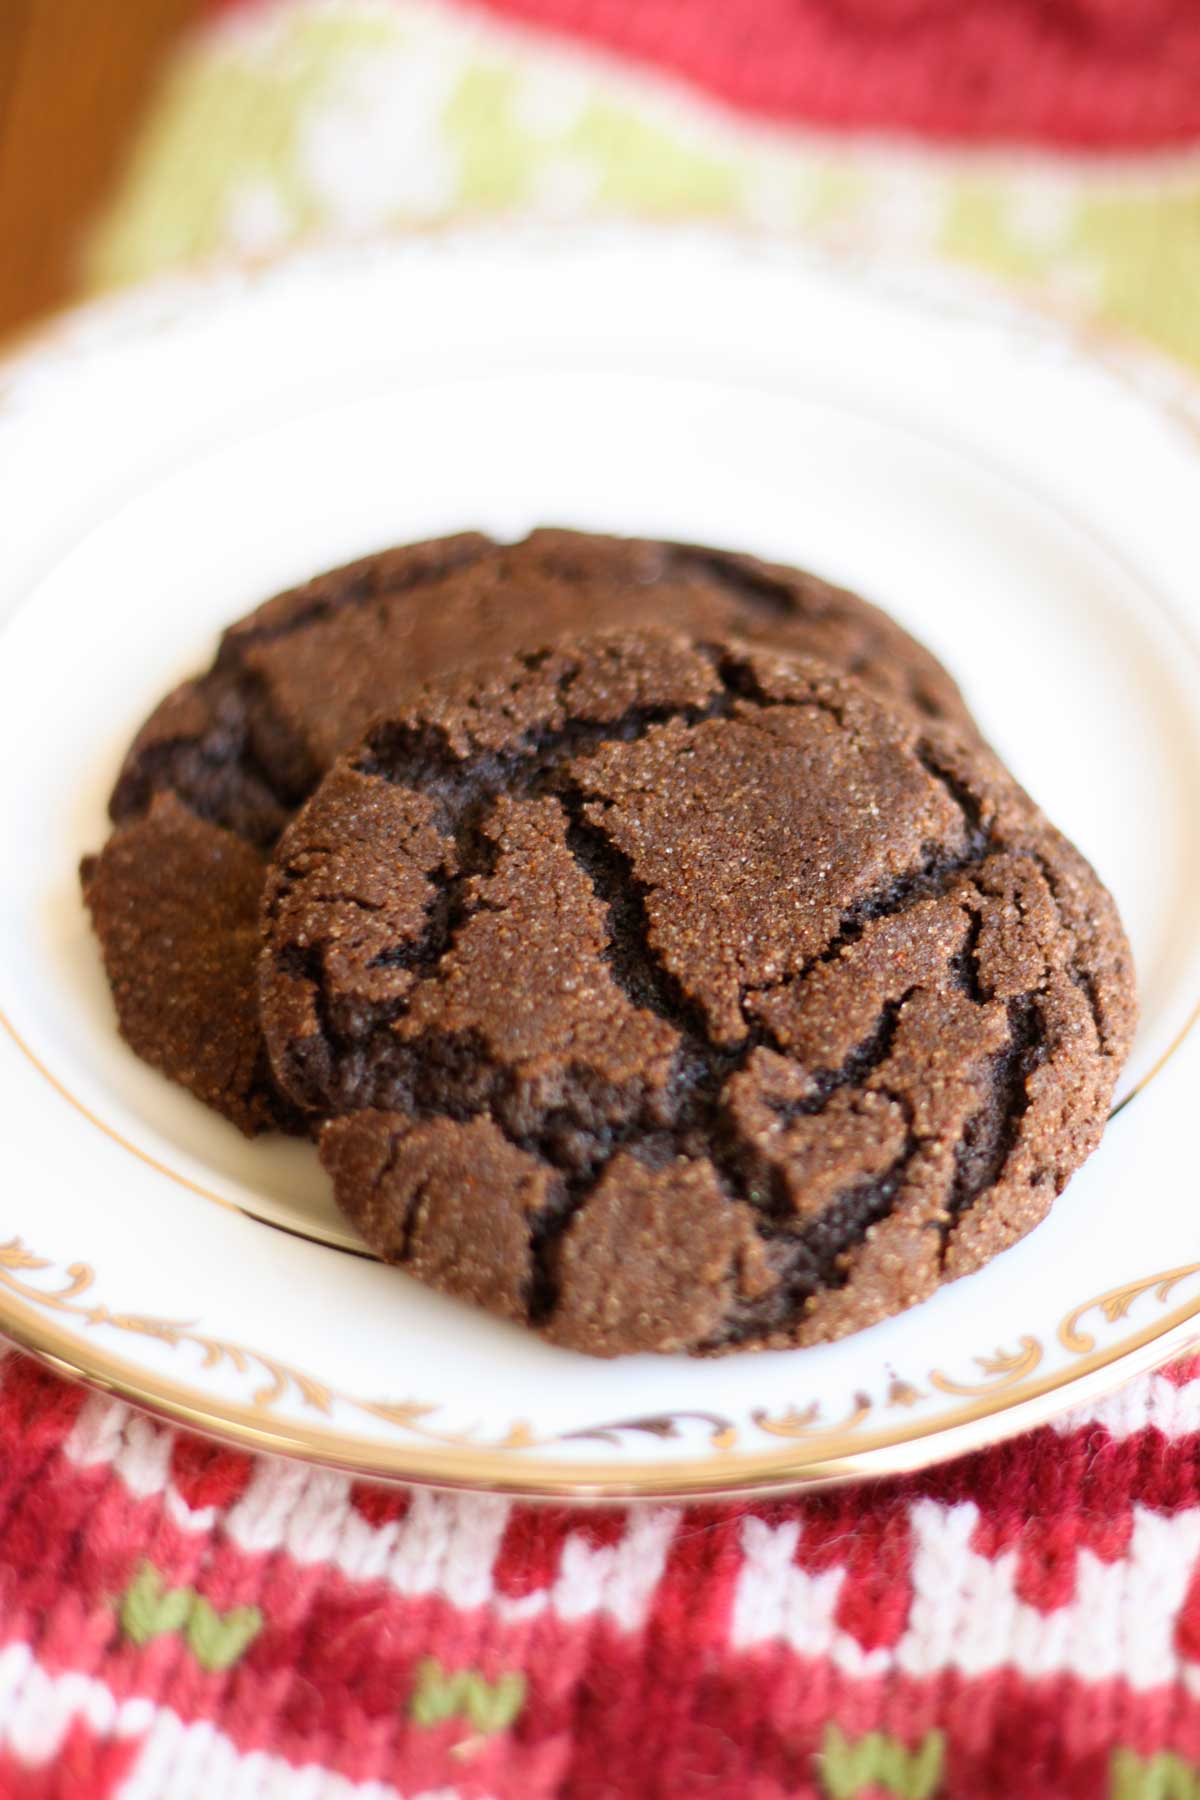 Two chocolate cookies with crinkles over the surface sit on a china plate. A knitted stocking sits under the plate.